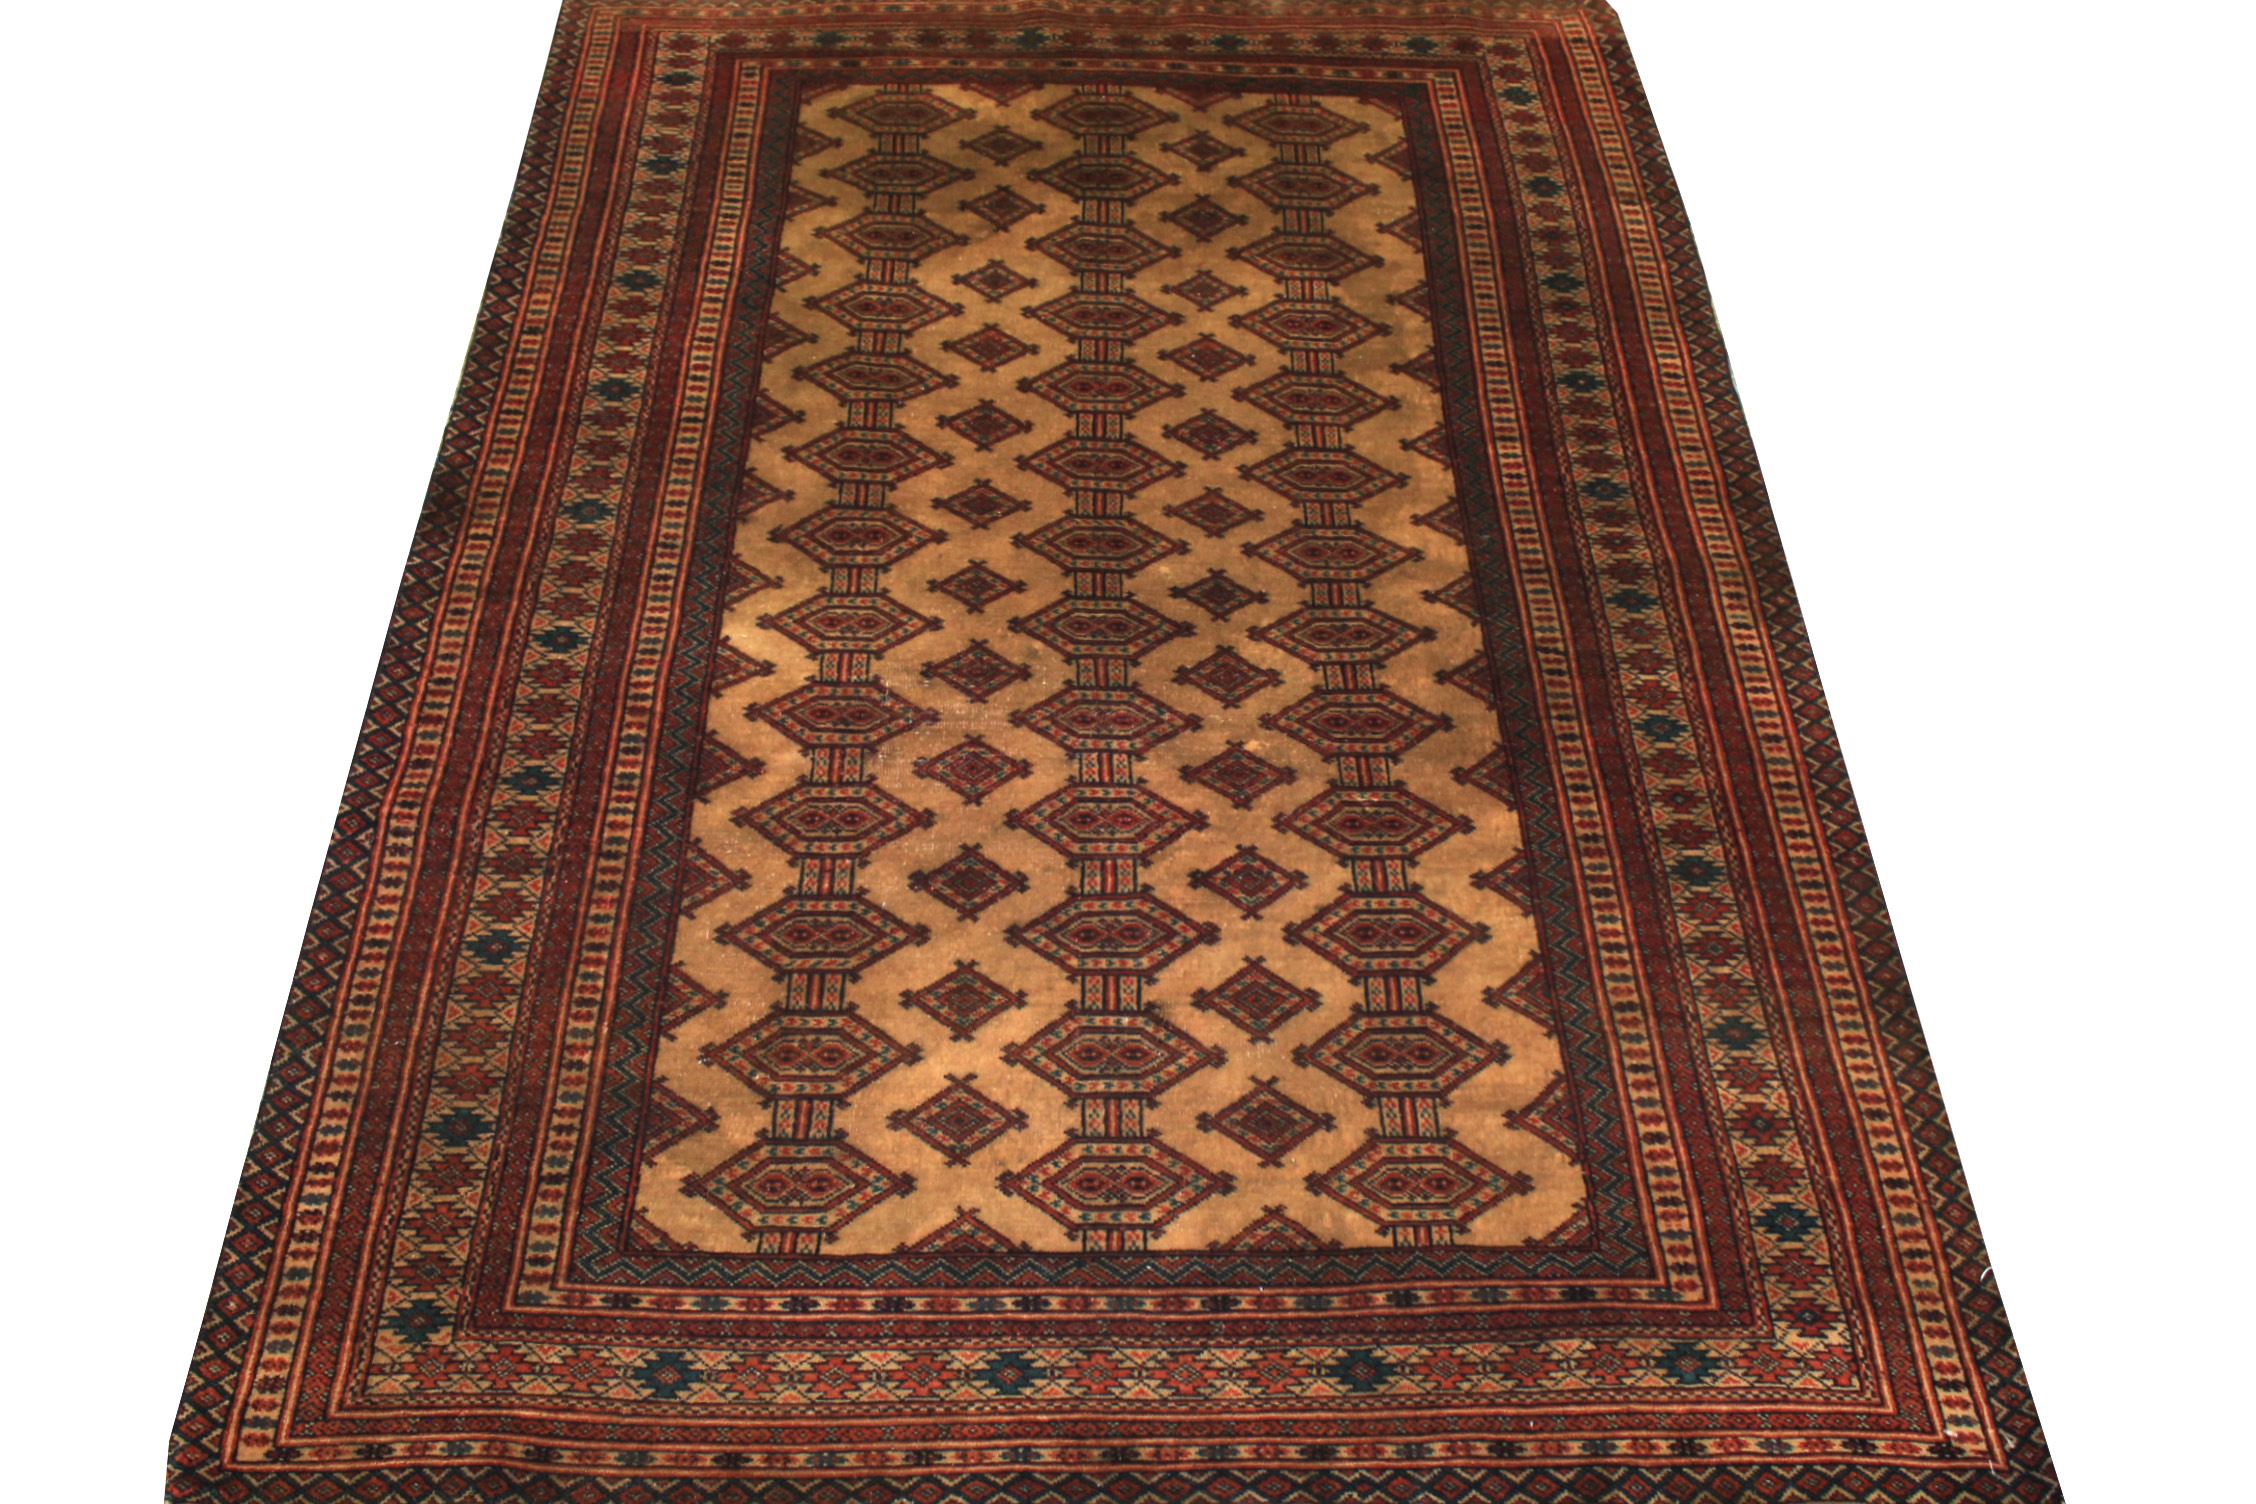 4x6 Geometric Hand Knotted Wool Area Rug - MR19449